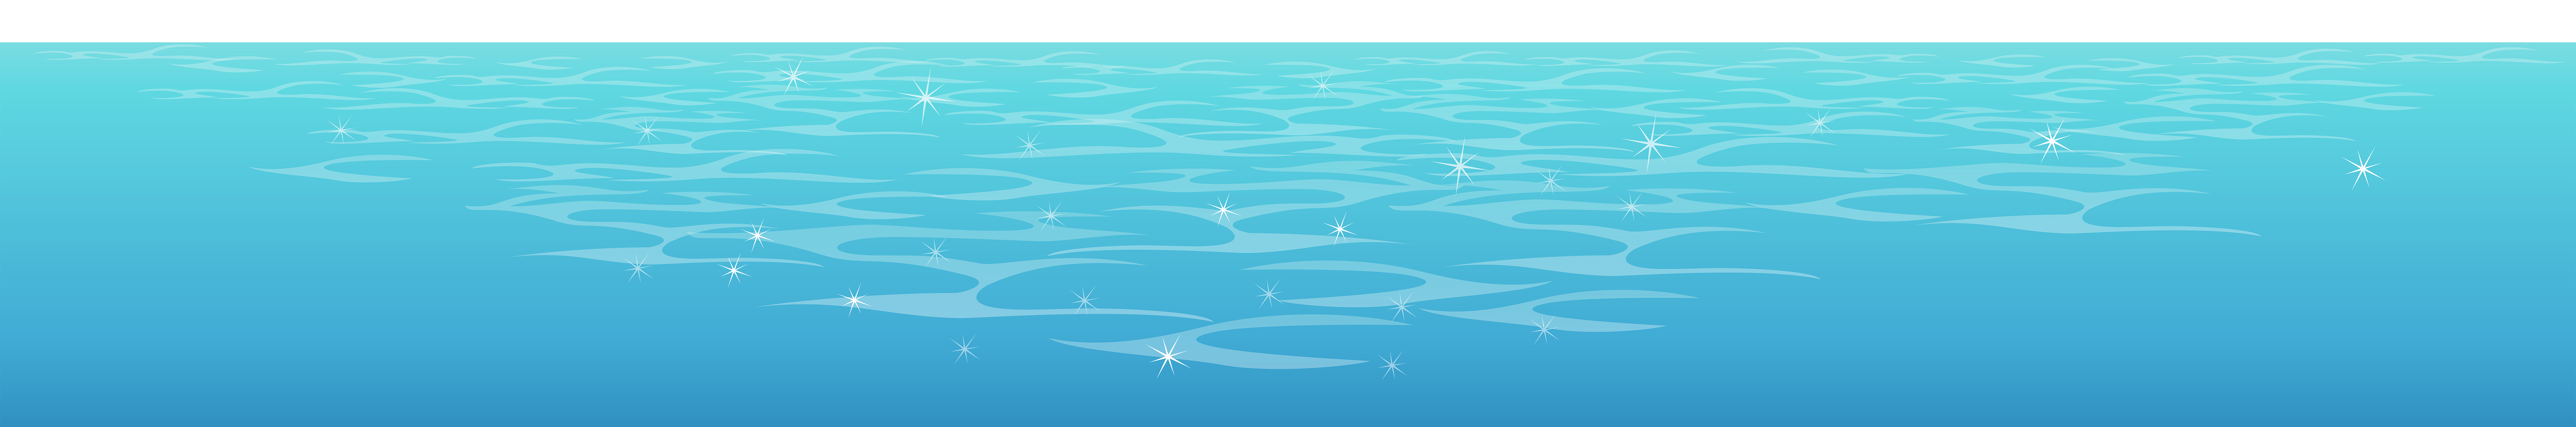 Sea water ground transparent. Free clipart ocean